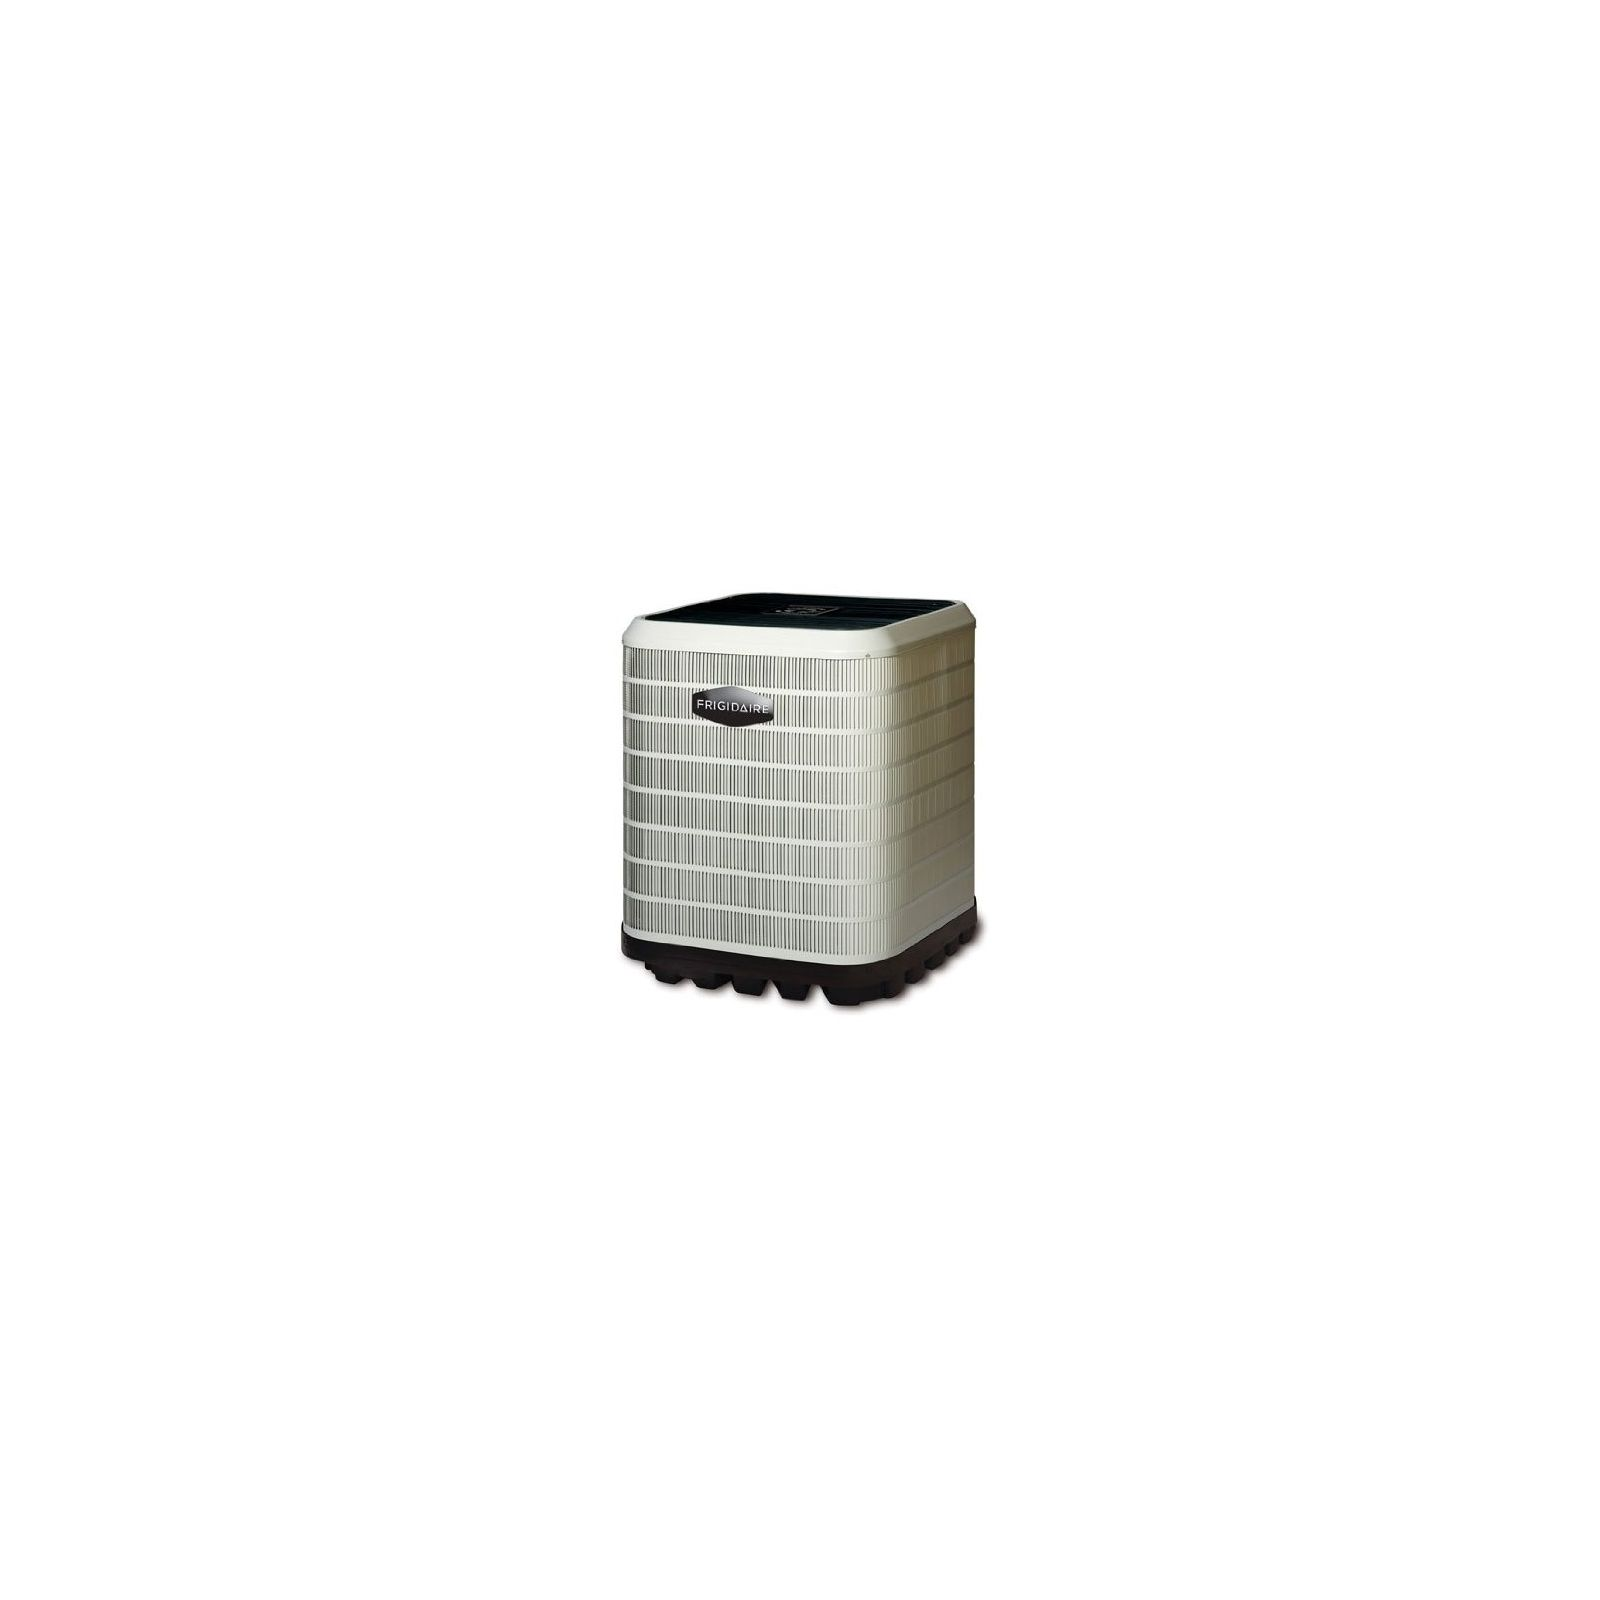 Frigidaire 919670E - ET4BF-060KA - 5 Ton 16 SEER Extra High Efficiency Heat Pump, R410A